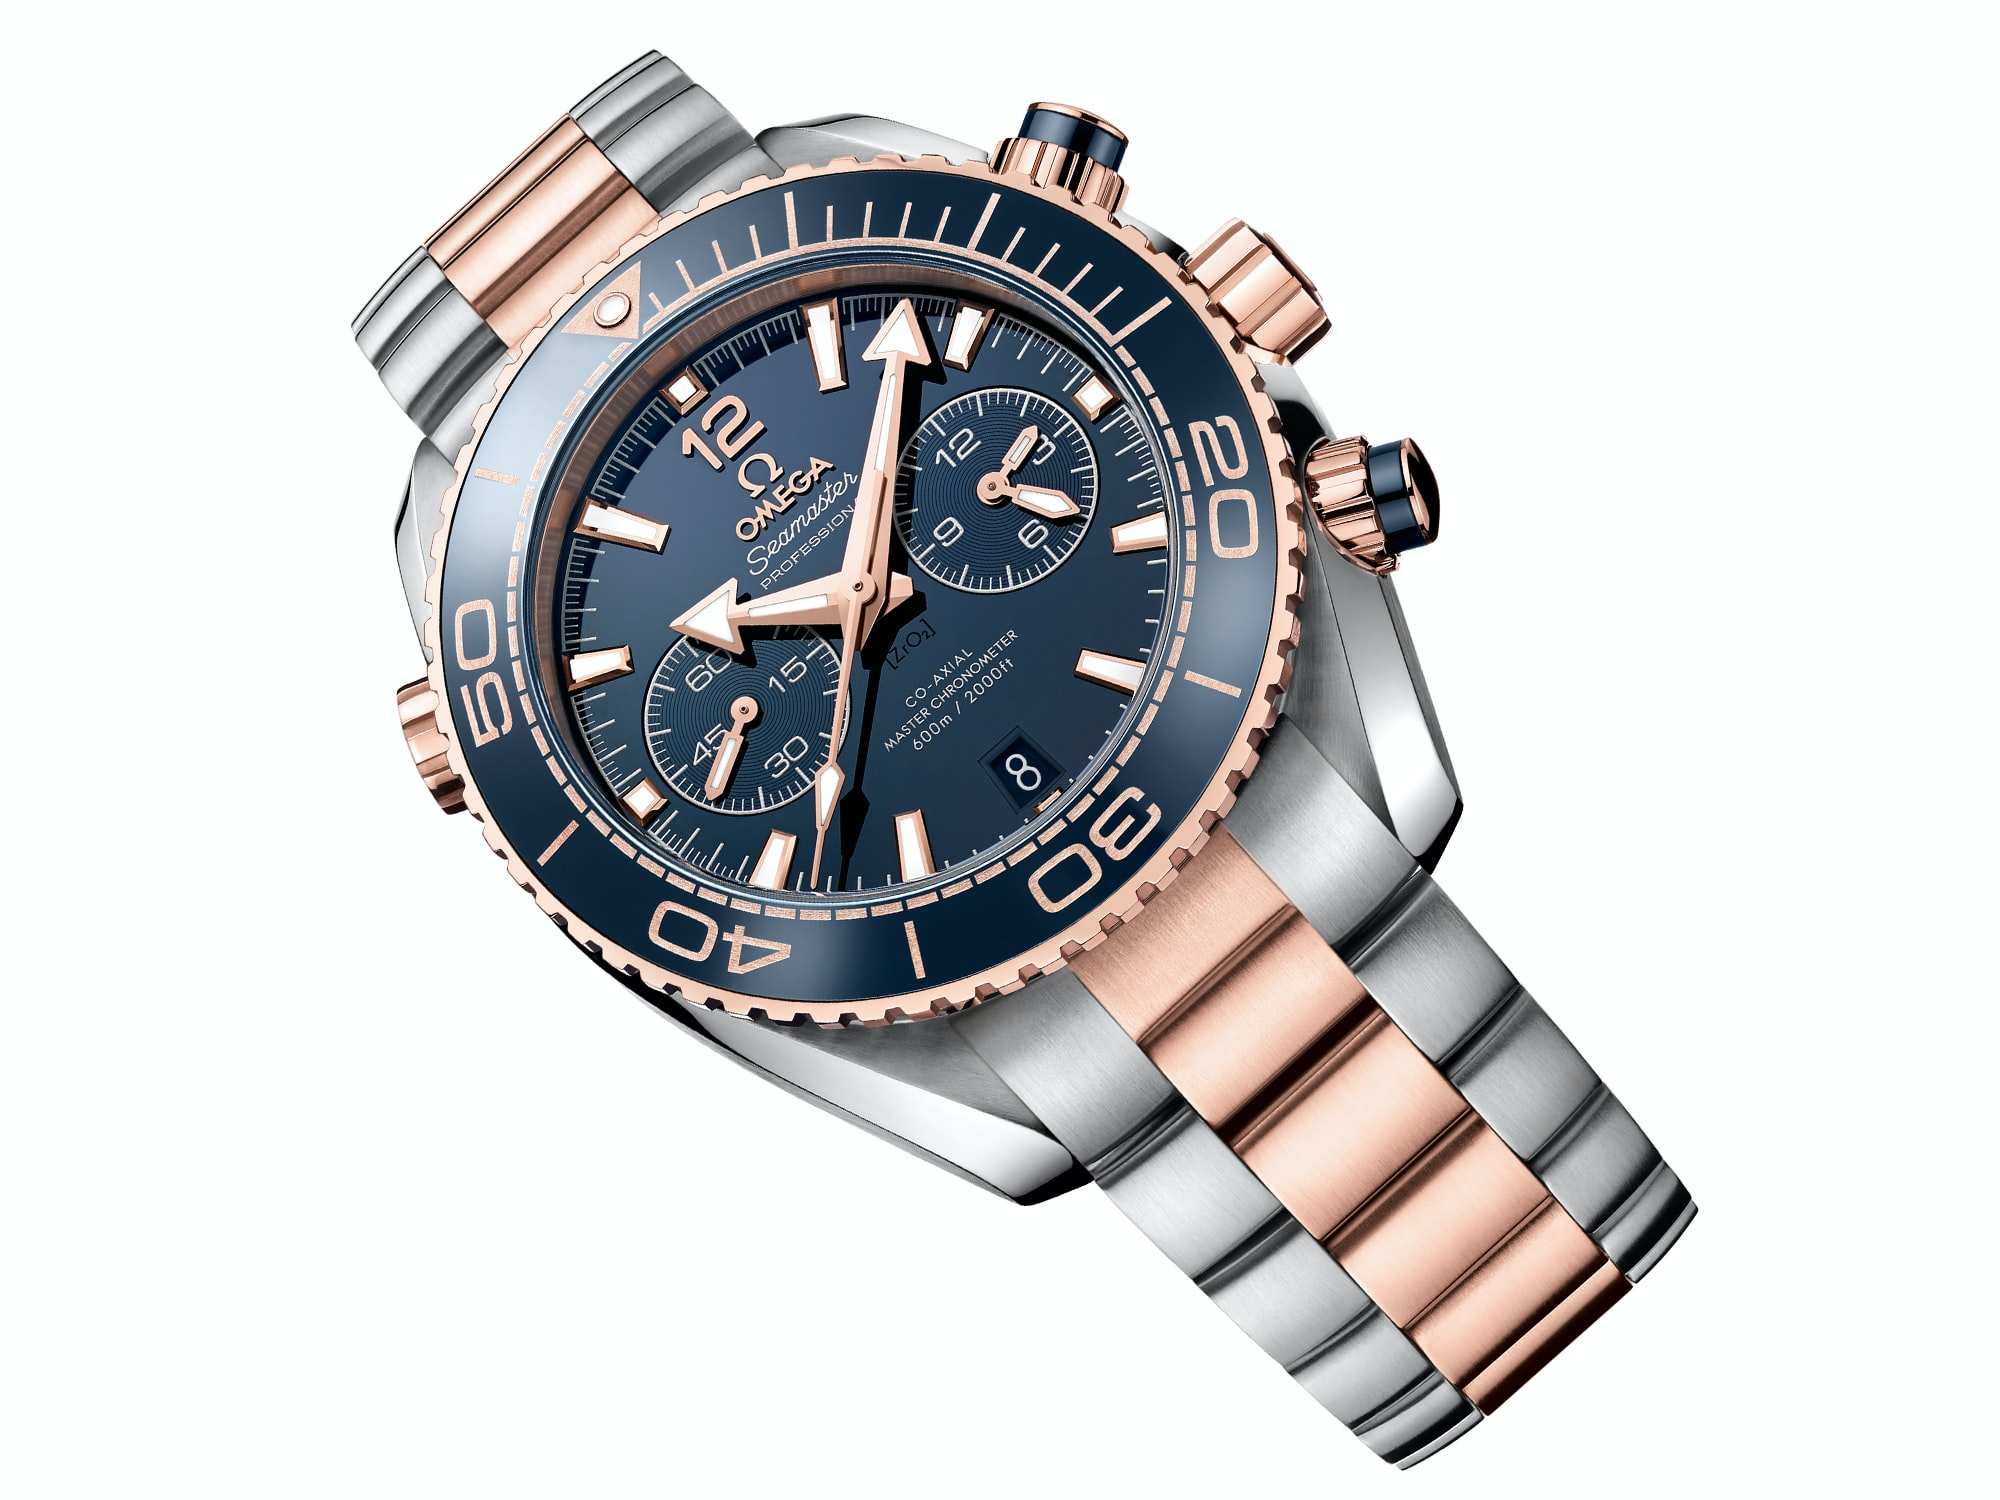 Omega Planet Ocean Chronograph 45.5mm Introducing: The Omega Seamaster Planet Ocean Chronograph 45.5mm, Omega's First METAS Certified Master Chronograph Introducing: The Omega Seamaster Planet Ocean Chronograph 45.5mm, Omega's First METAS Certified Master Chronograph omega 44 2